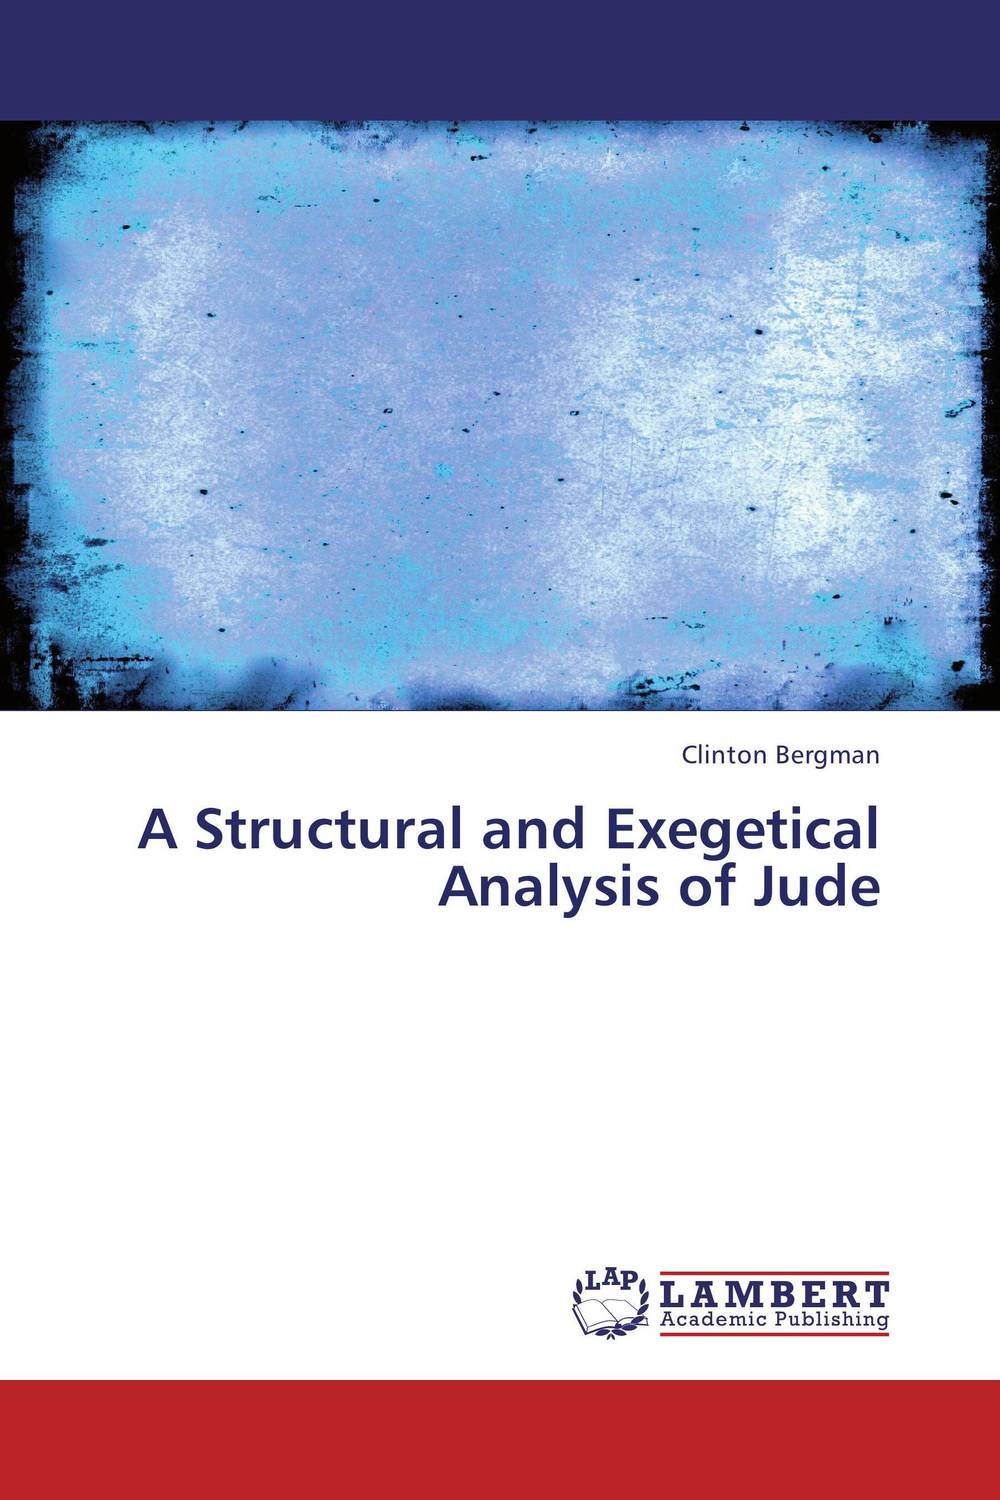 A Structural and Exegetical Analysis of Jude the revelations of jude connor